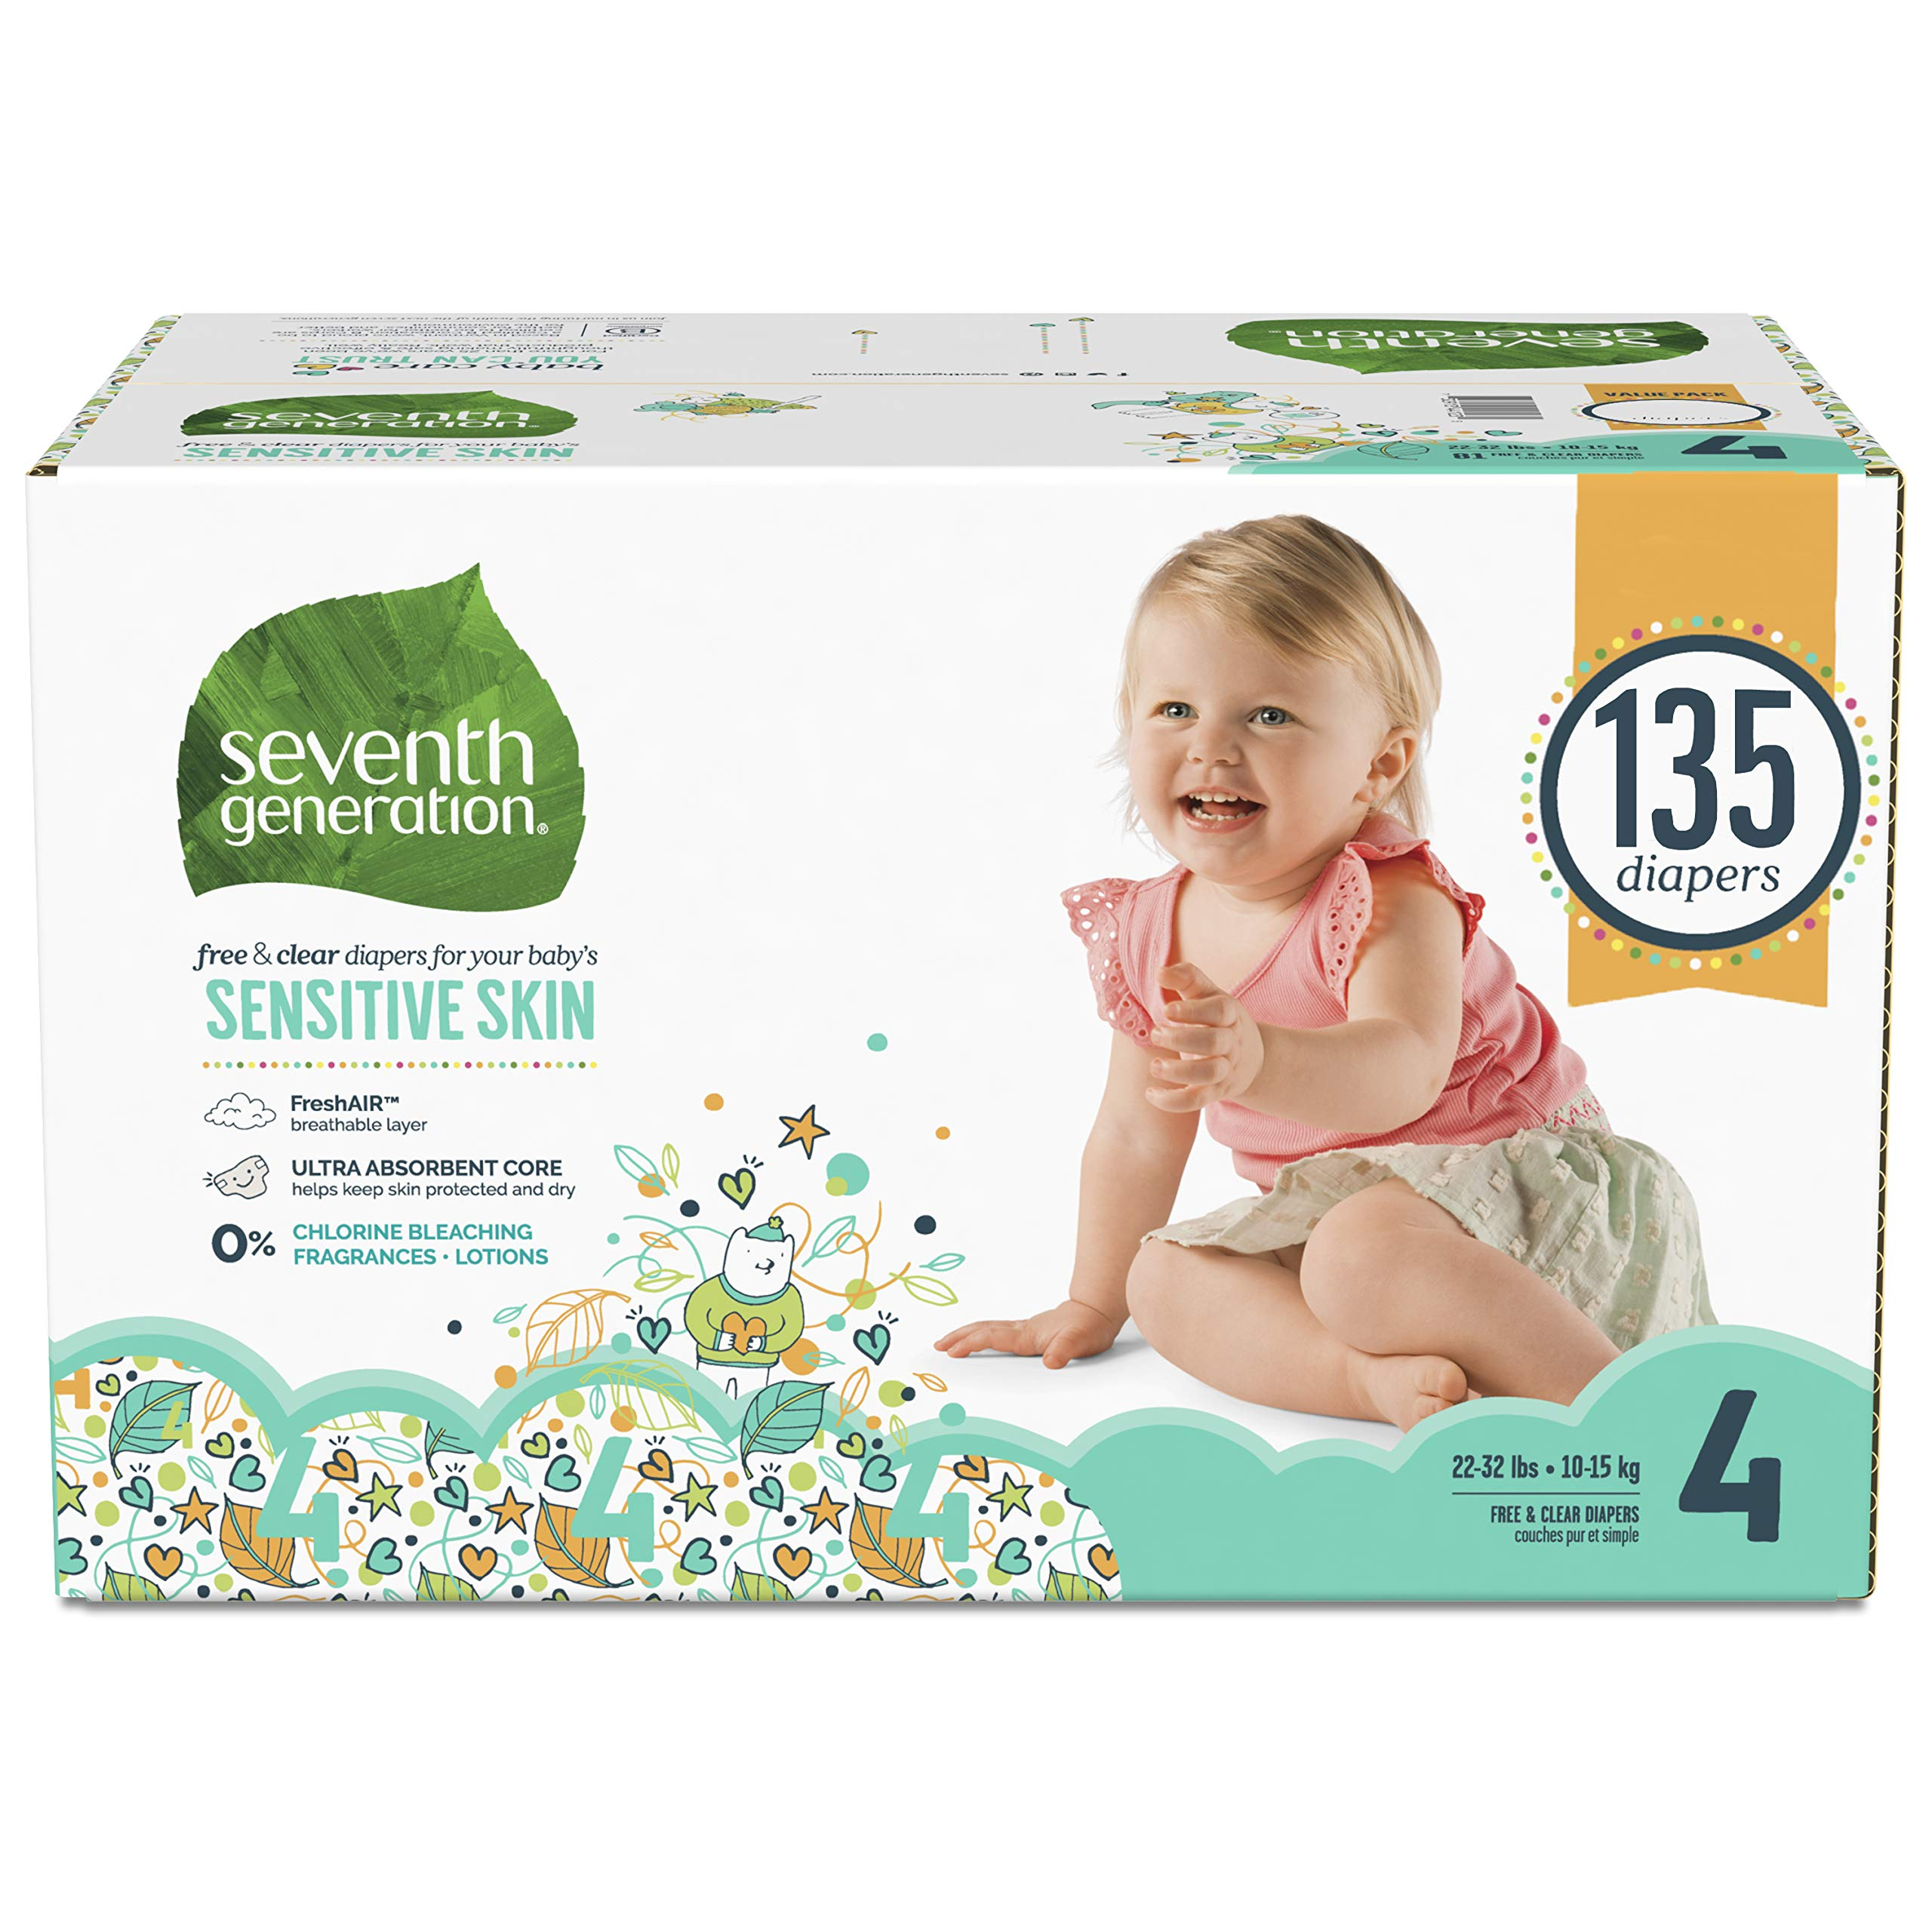 Seventh Generation Baby Diapers for Sensitive Skin, Animal Prints, Size 4, 135 Count (Packaging May Vary) by Seventh Generation